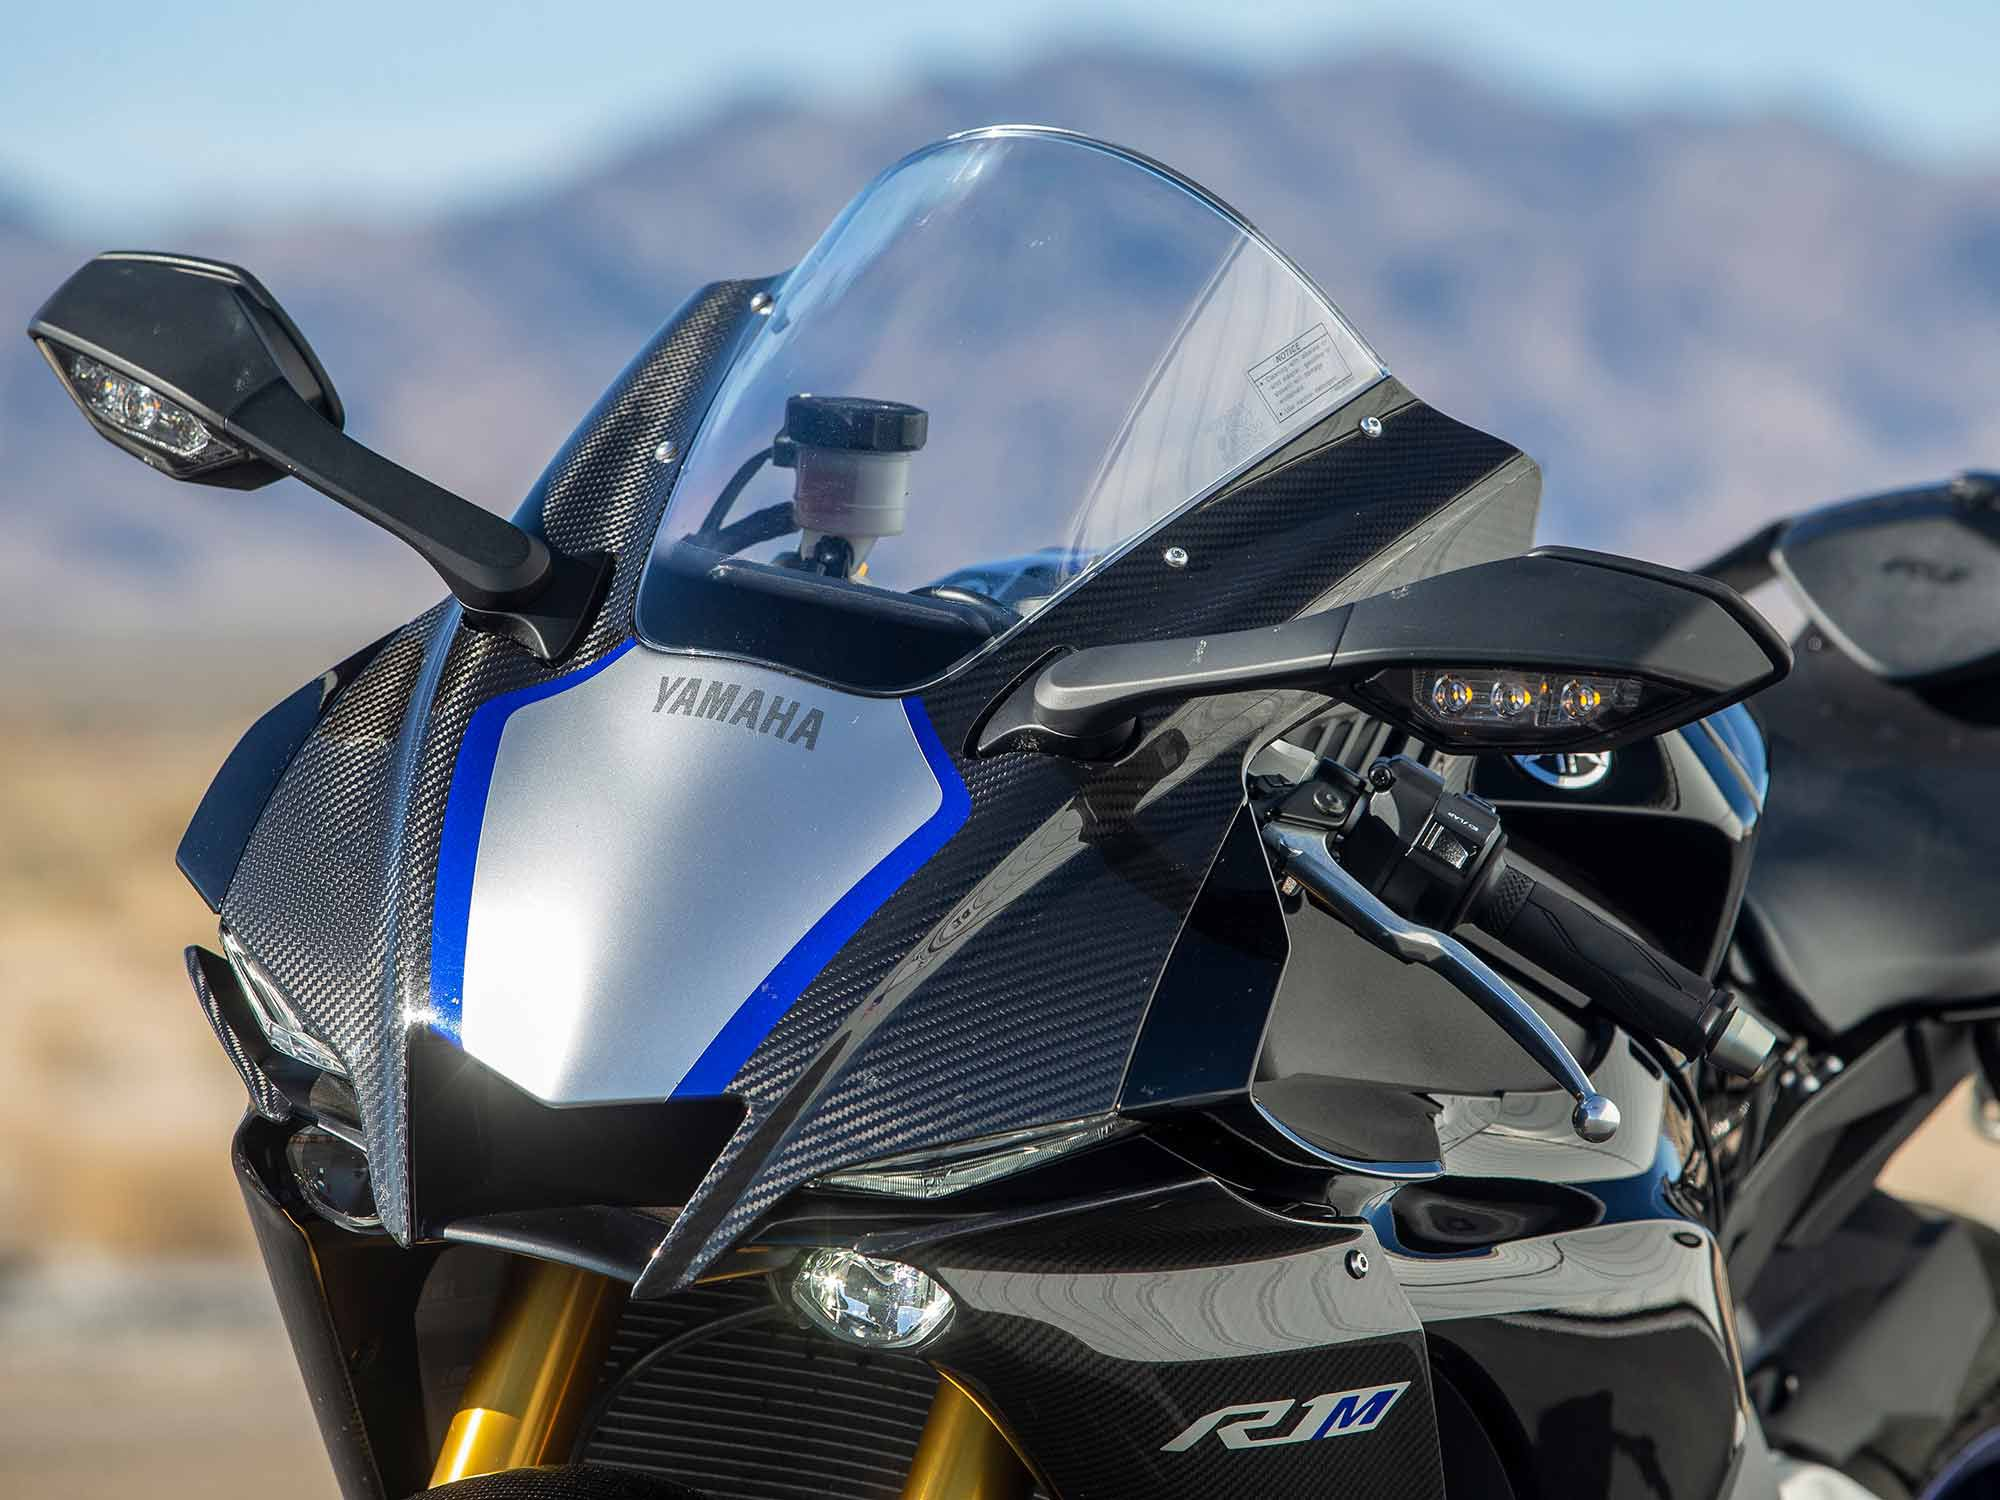 Draped in full carbon fiber bodywork (including the tail section), Yamaha's YZF-R1M looks like a bespoke piece of hardware for cruising around the street, or, setting fast lap times at the circuit.